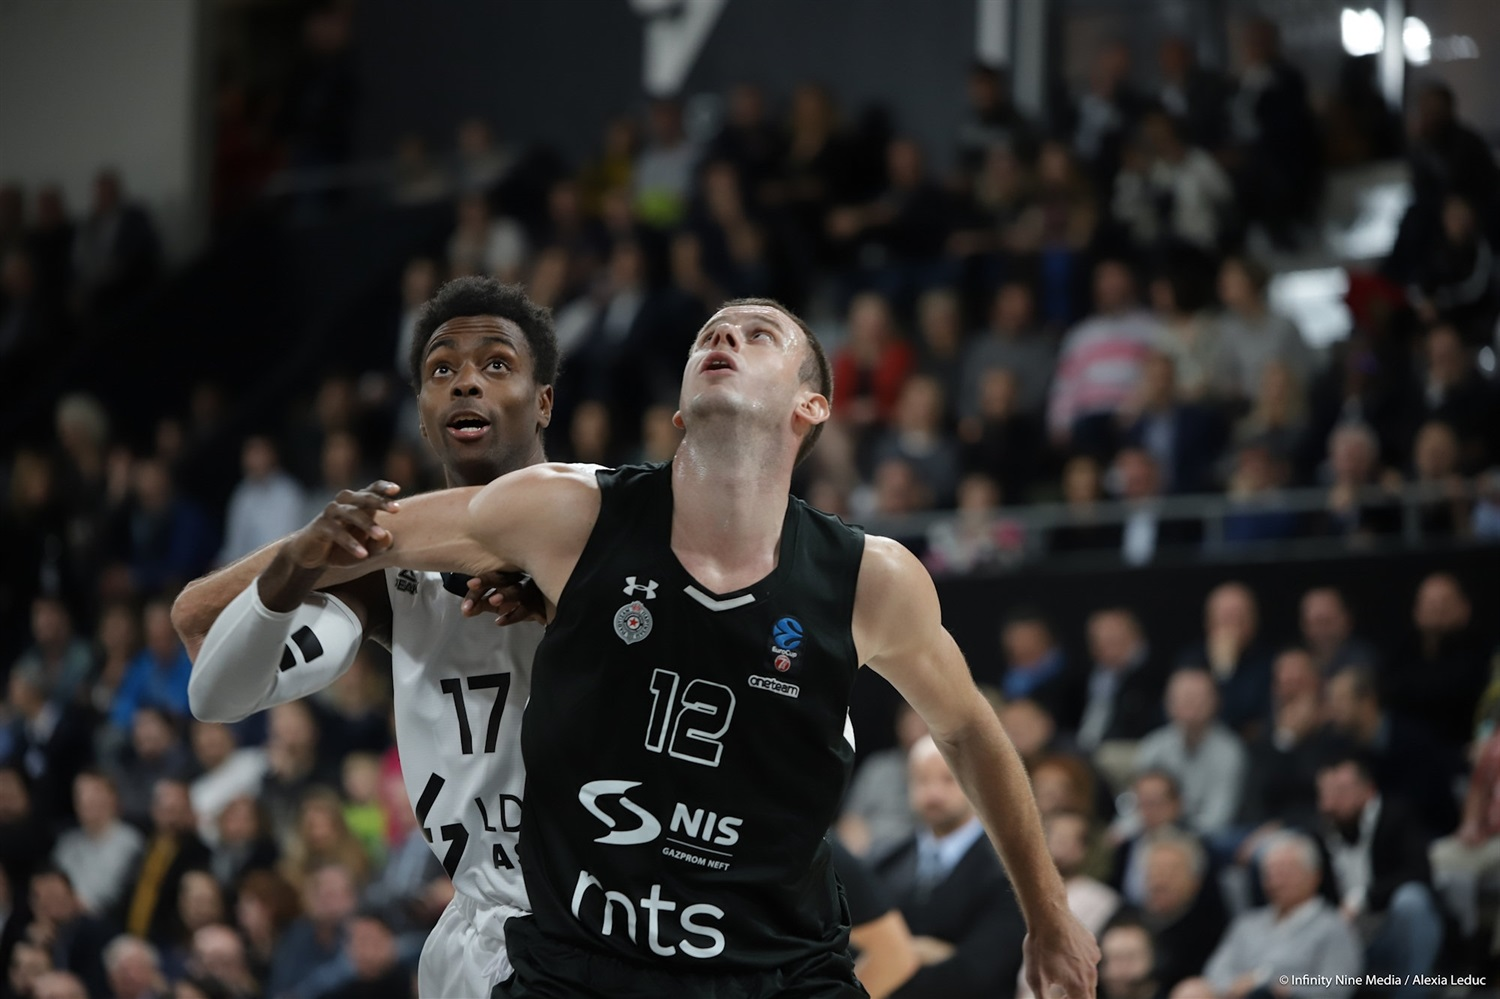 Novica Velickovic - Partizan NIS Belgrade (photo Infinity Nine Media - Alexia Leduc) - EC18